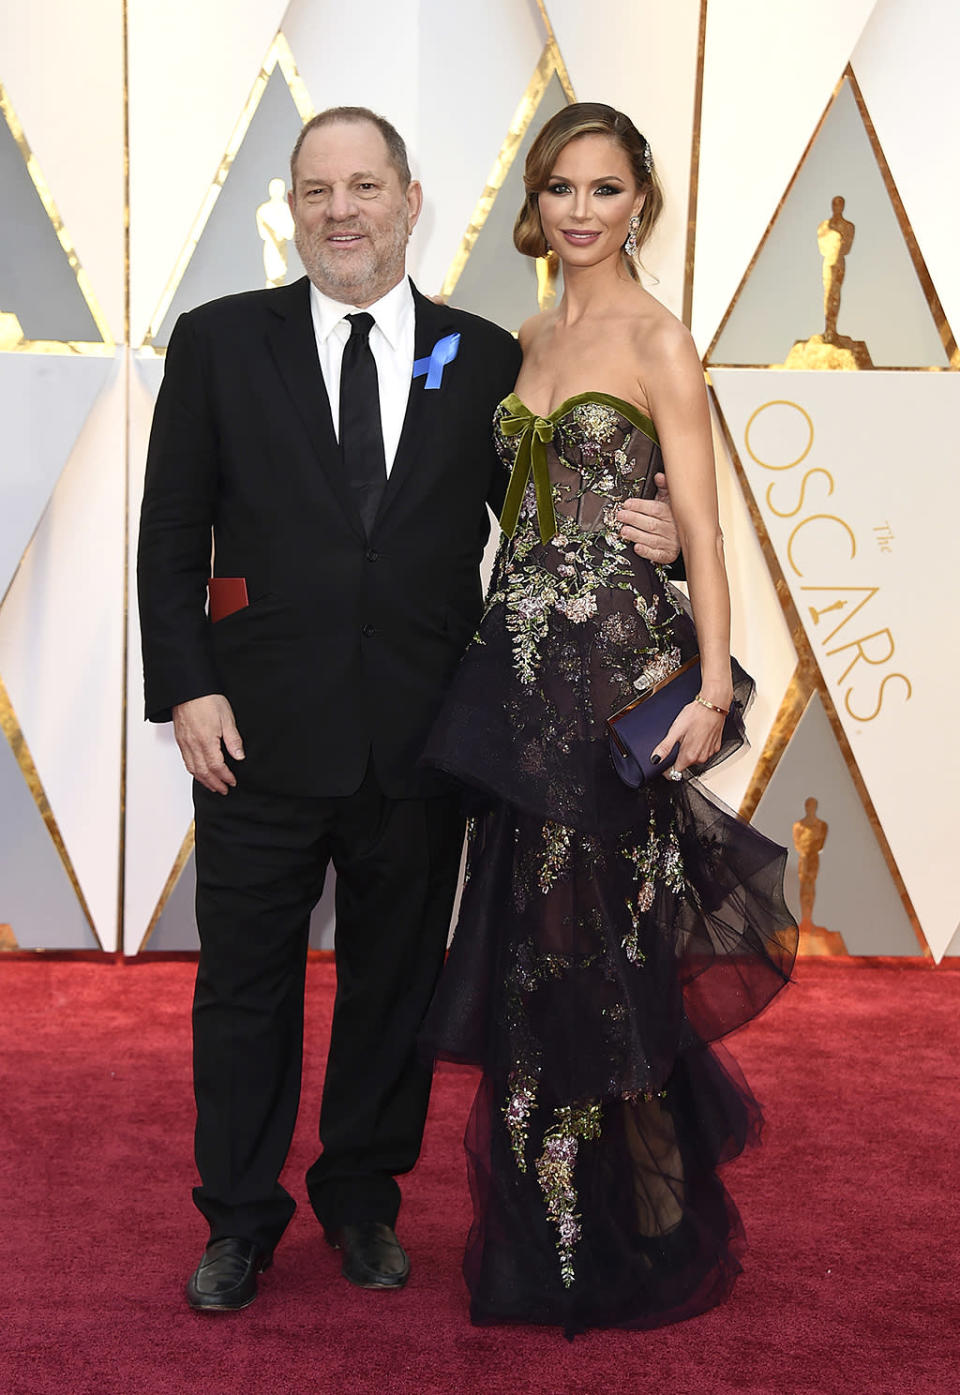 <p>Harvey Weinstein and Georgina Chapman arrive at the Oscars on Sunday, Feb. 26, 2017, at the Dolby Theatre in Los Angeles. (Photo by Jordan Strauss/Invision/AP) </p>